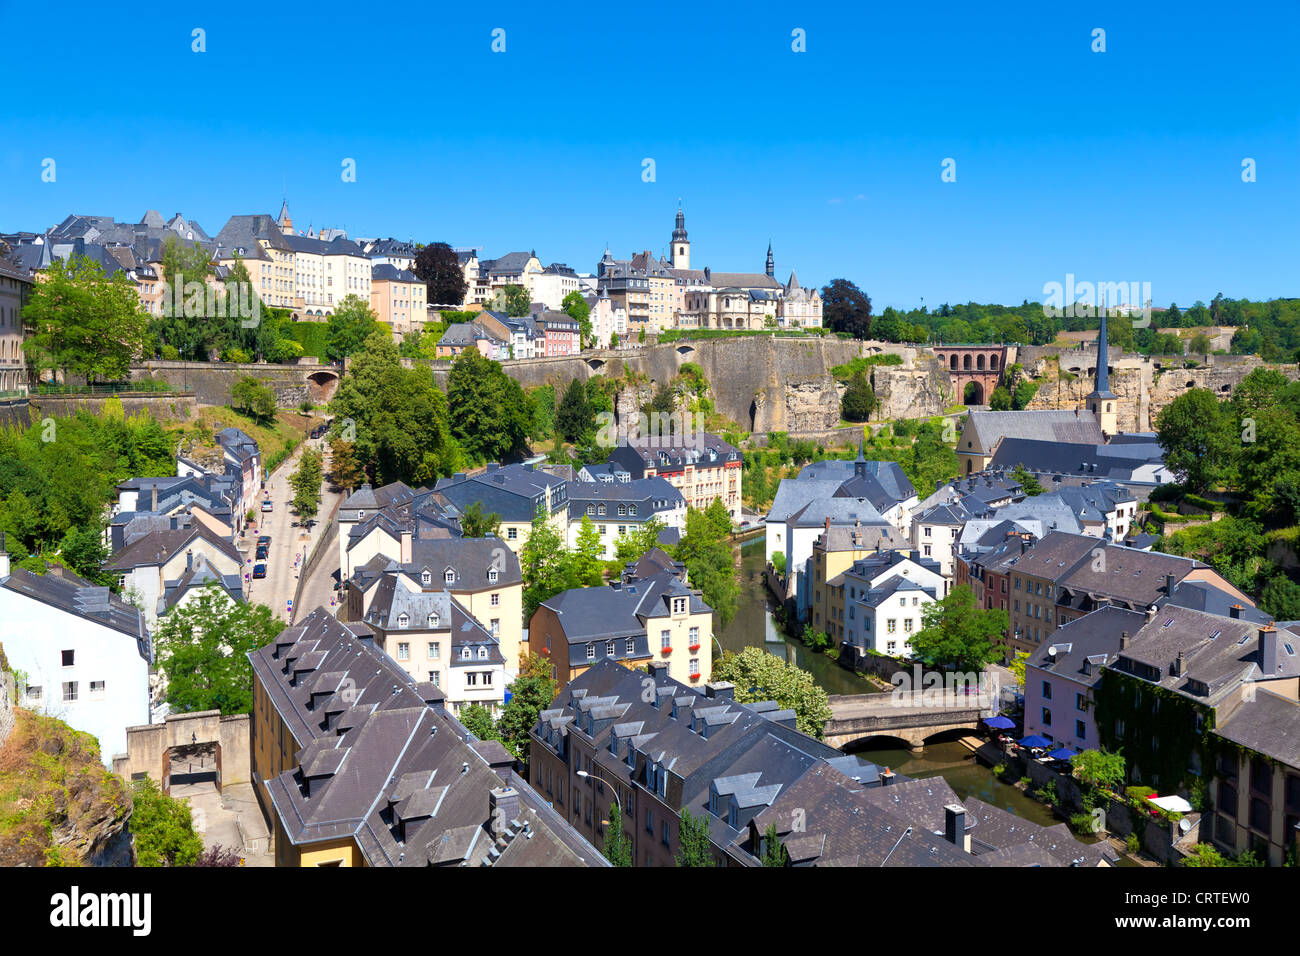 Luxembourg City Panorama on a sunny summer day - Stock Image